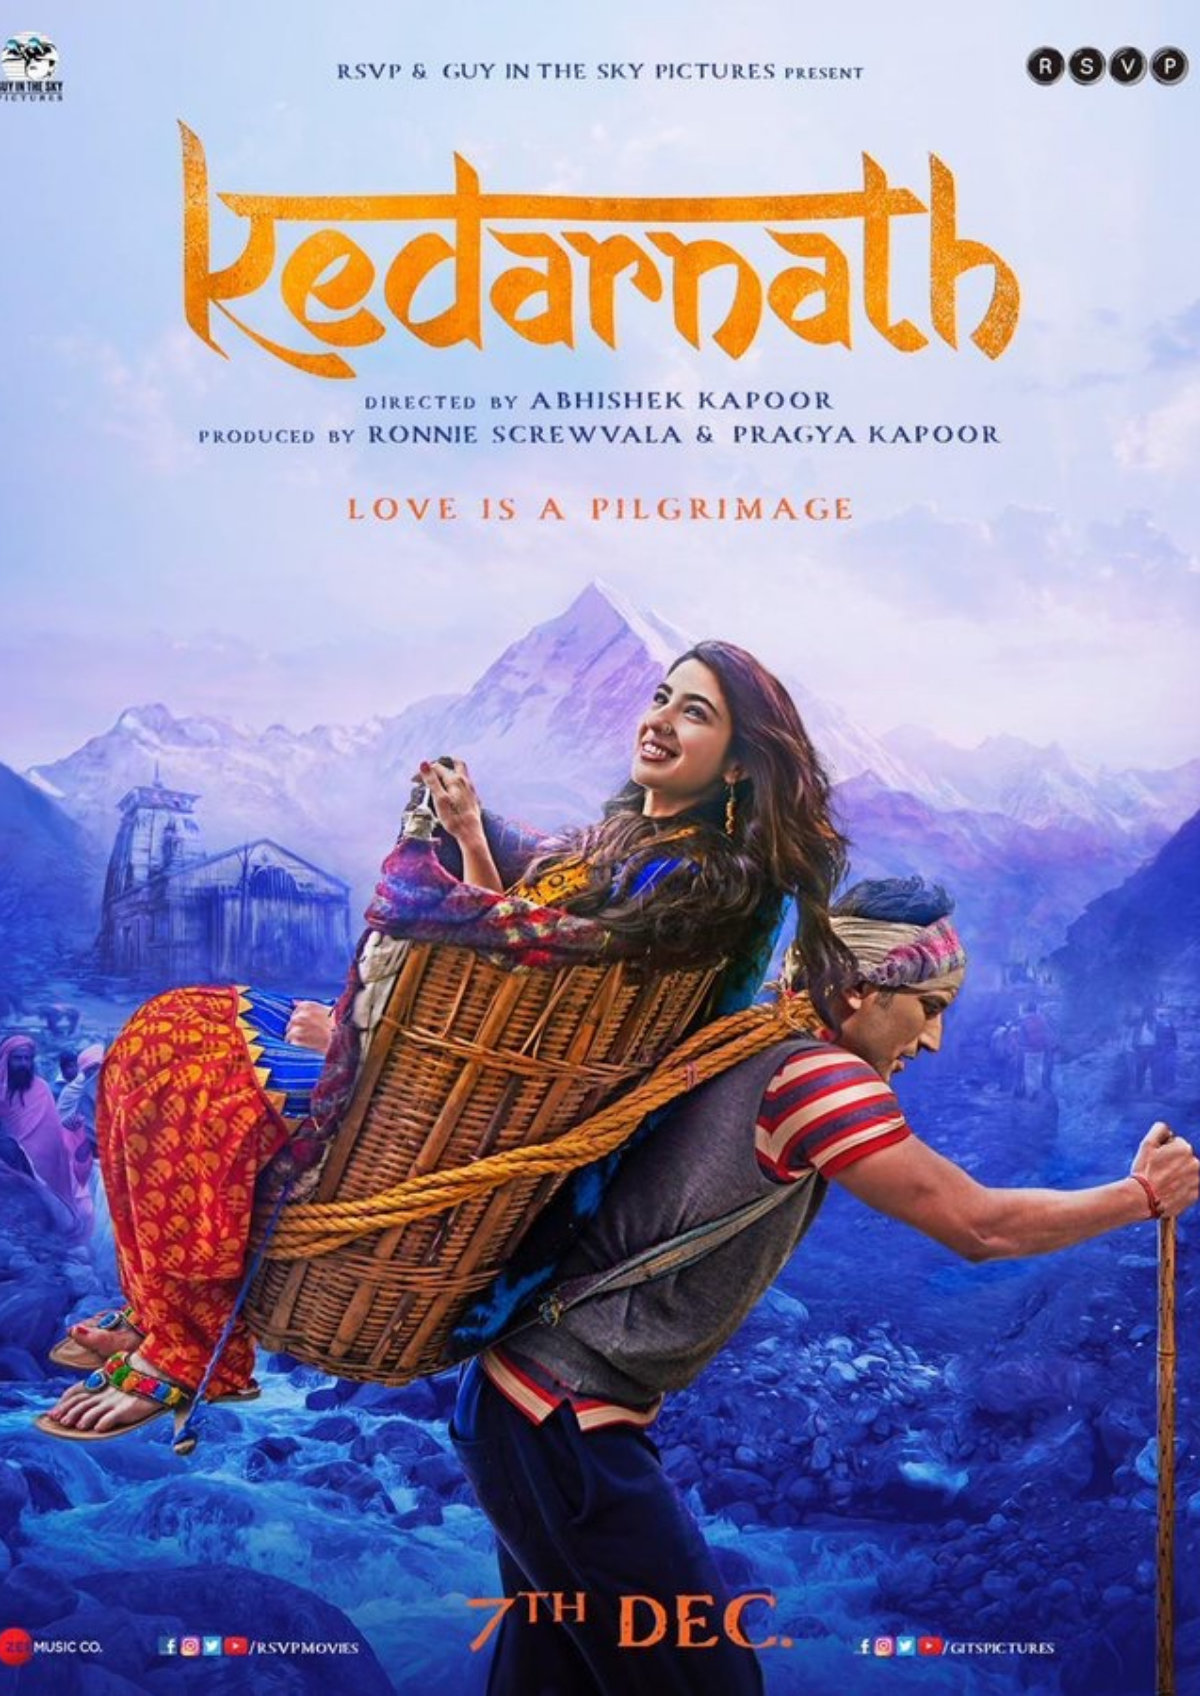 'Kedarnath' movie poster